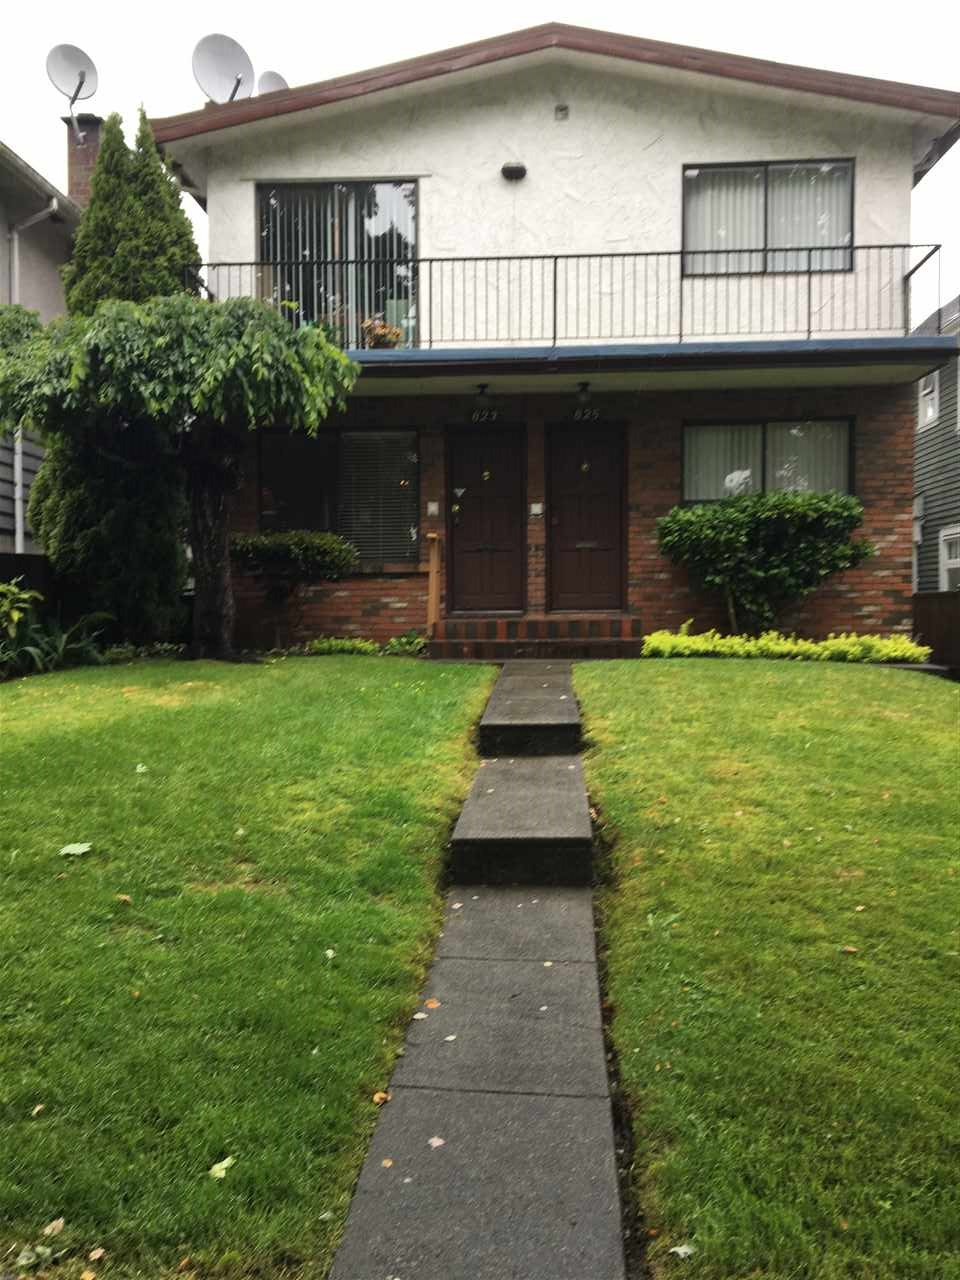 Main Photo: 823 E 15TH Avenue in Vancouver: Mount Pleasant VE House Duplex for sale (Vancouver East)  : MLS(r) # R2176110